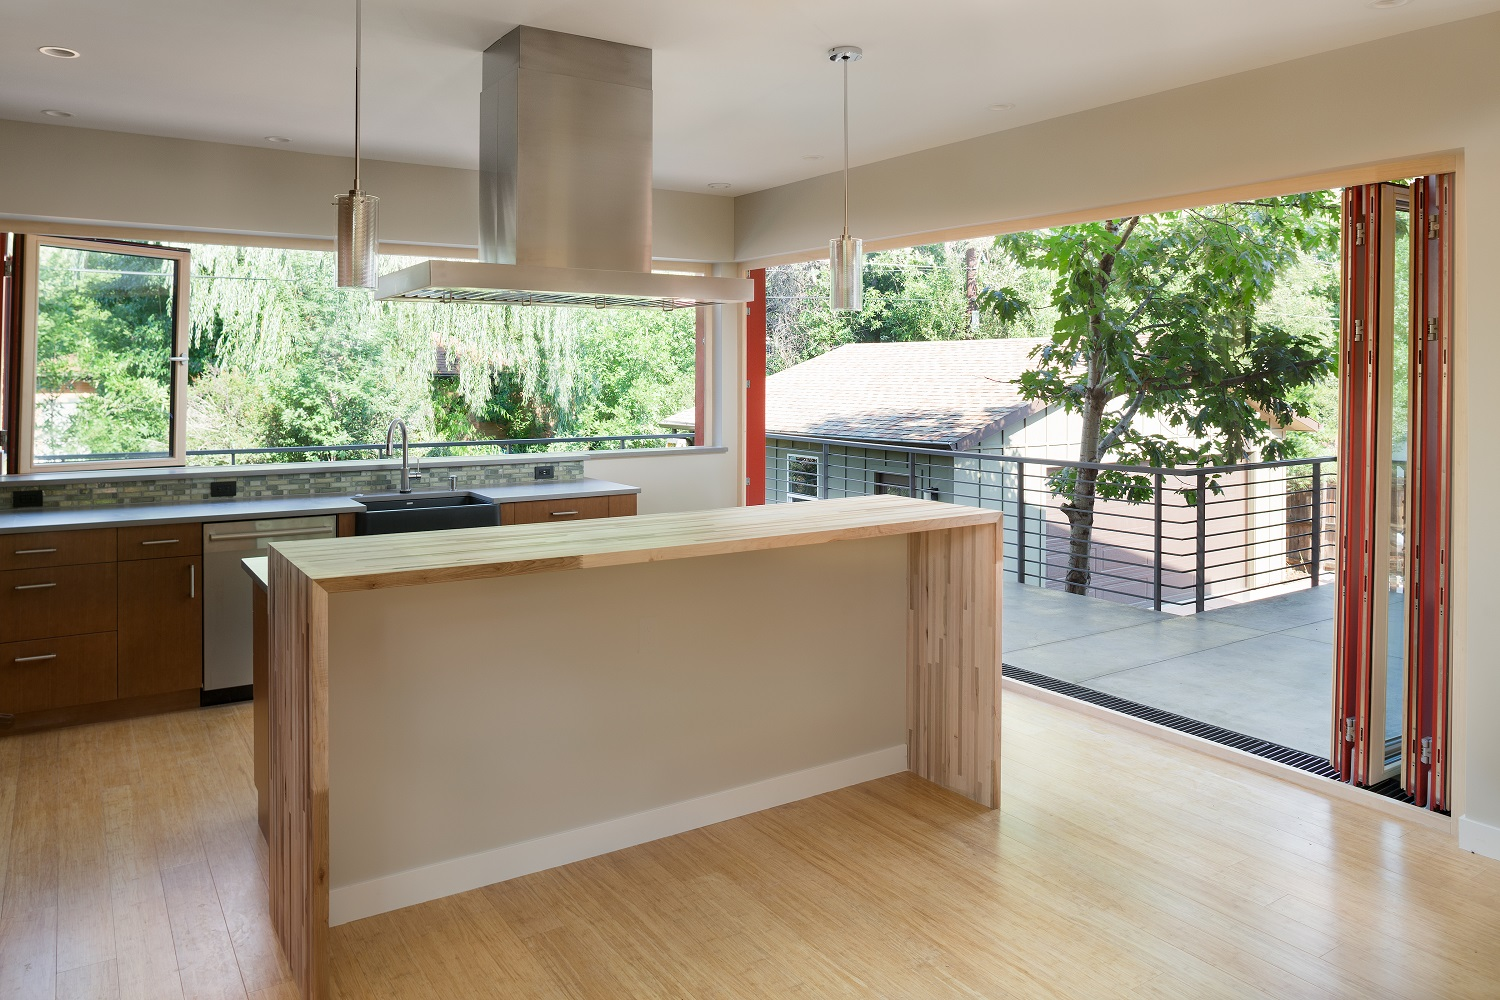 S.33rd-Kitchen-3-Open (1500)